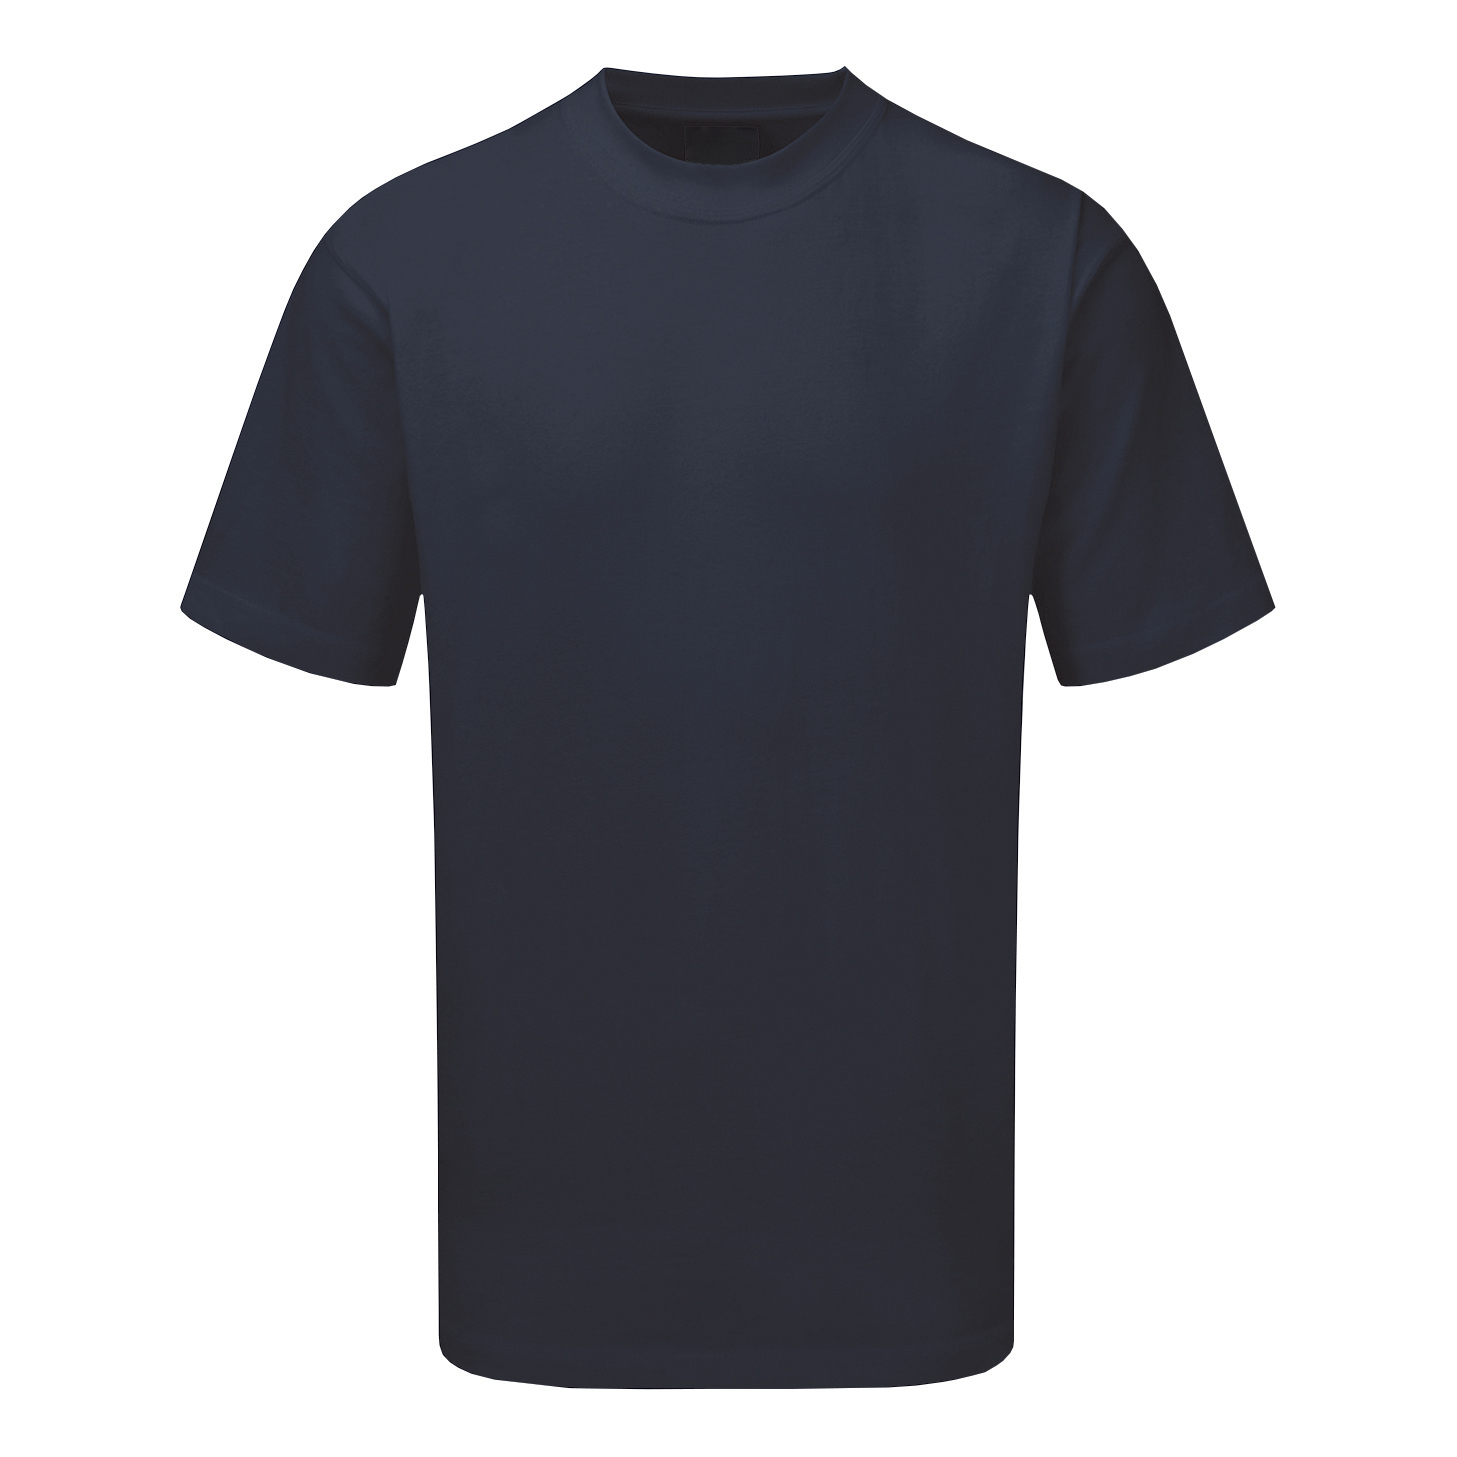 Business T Shirt Premium Polycotton Triple Stitched Size XL Navy